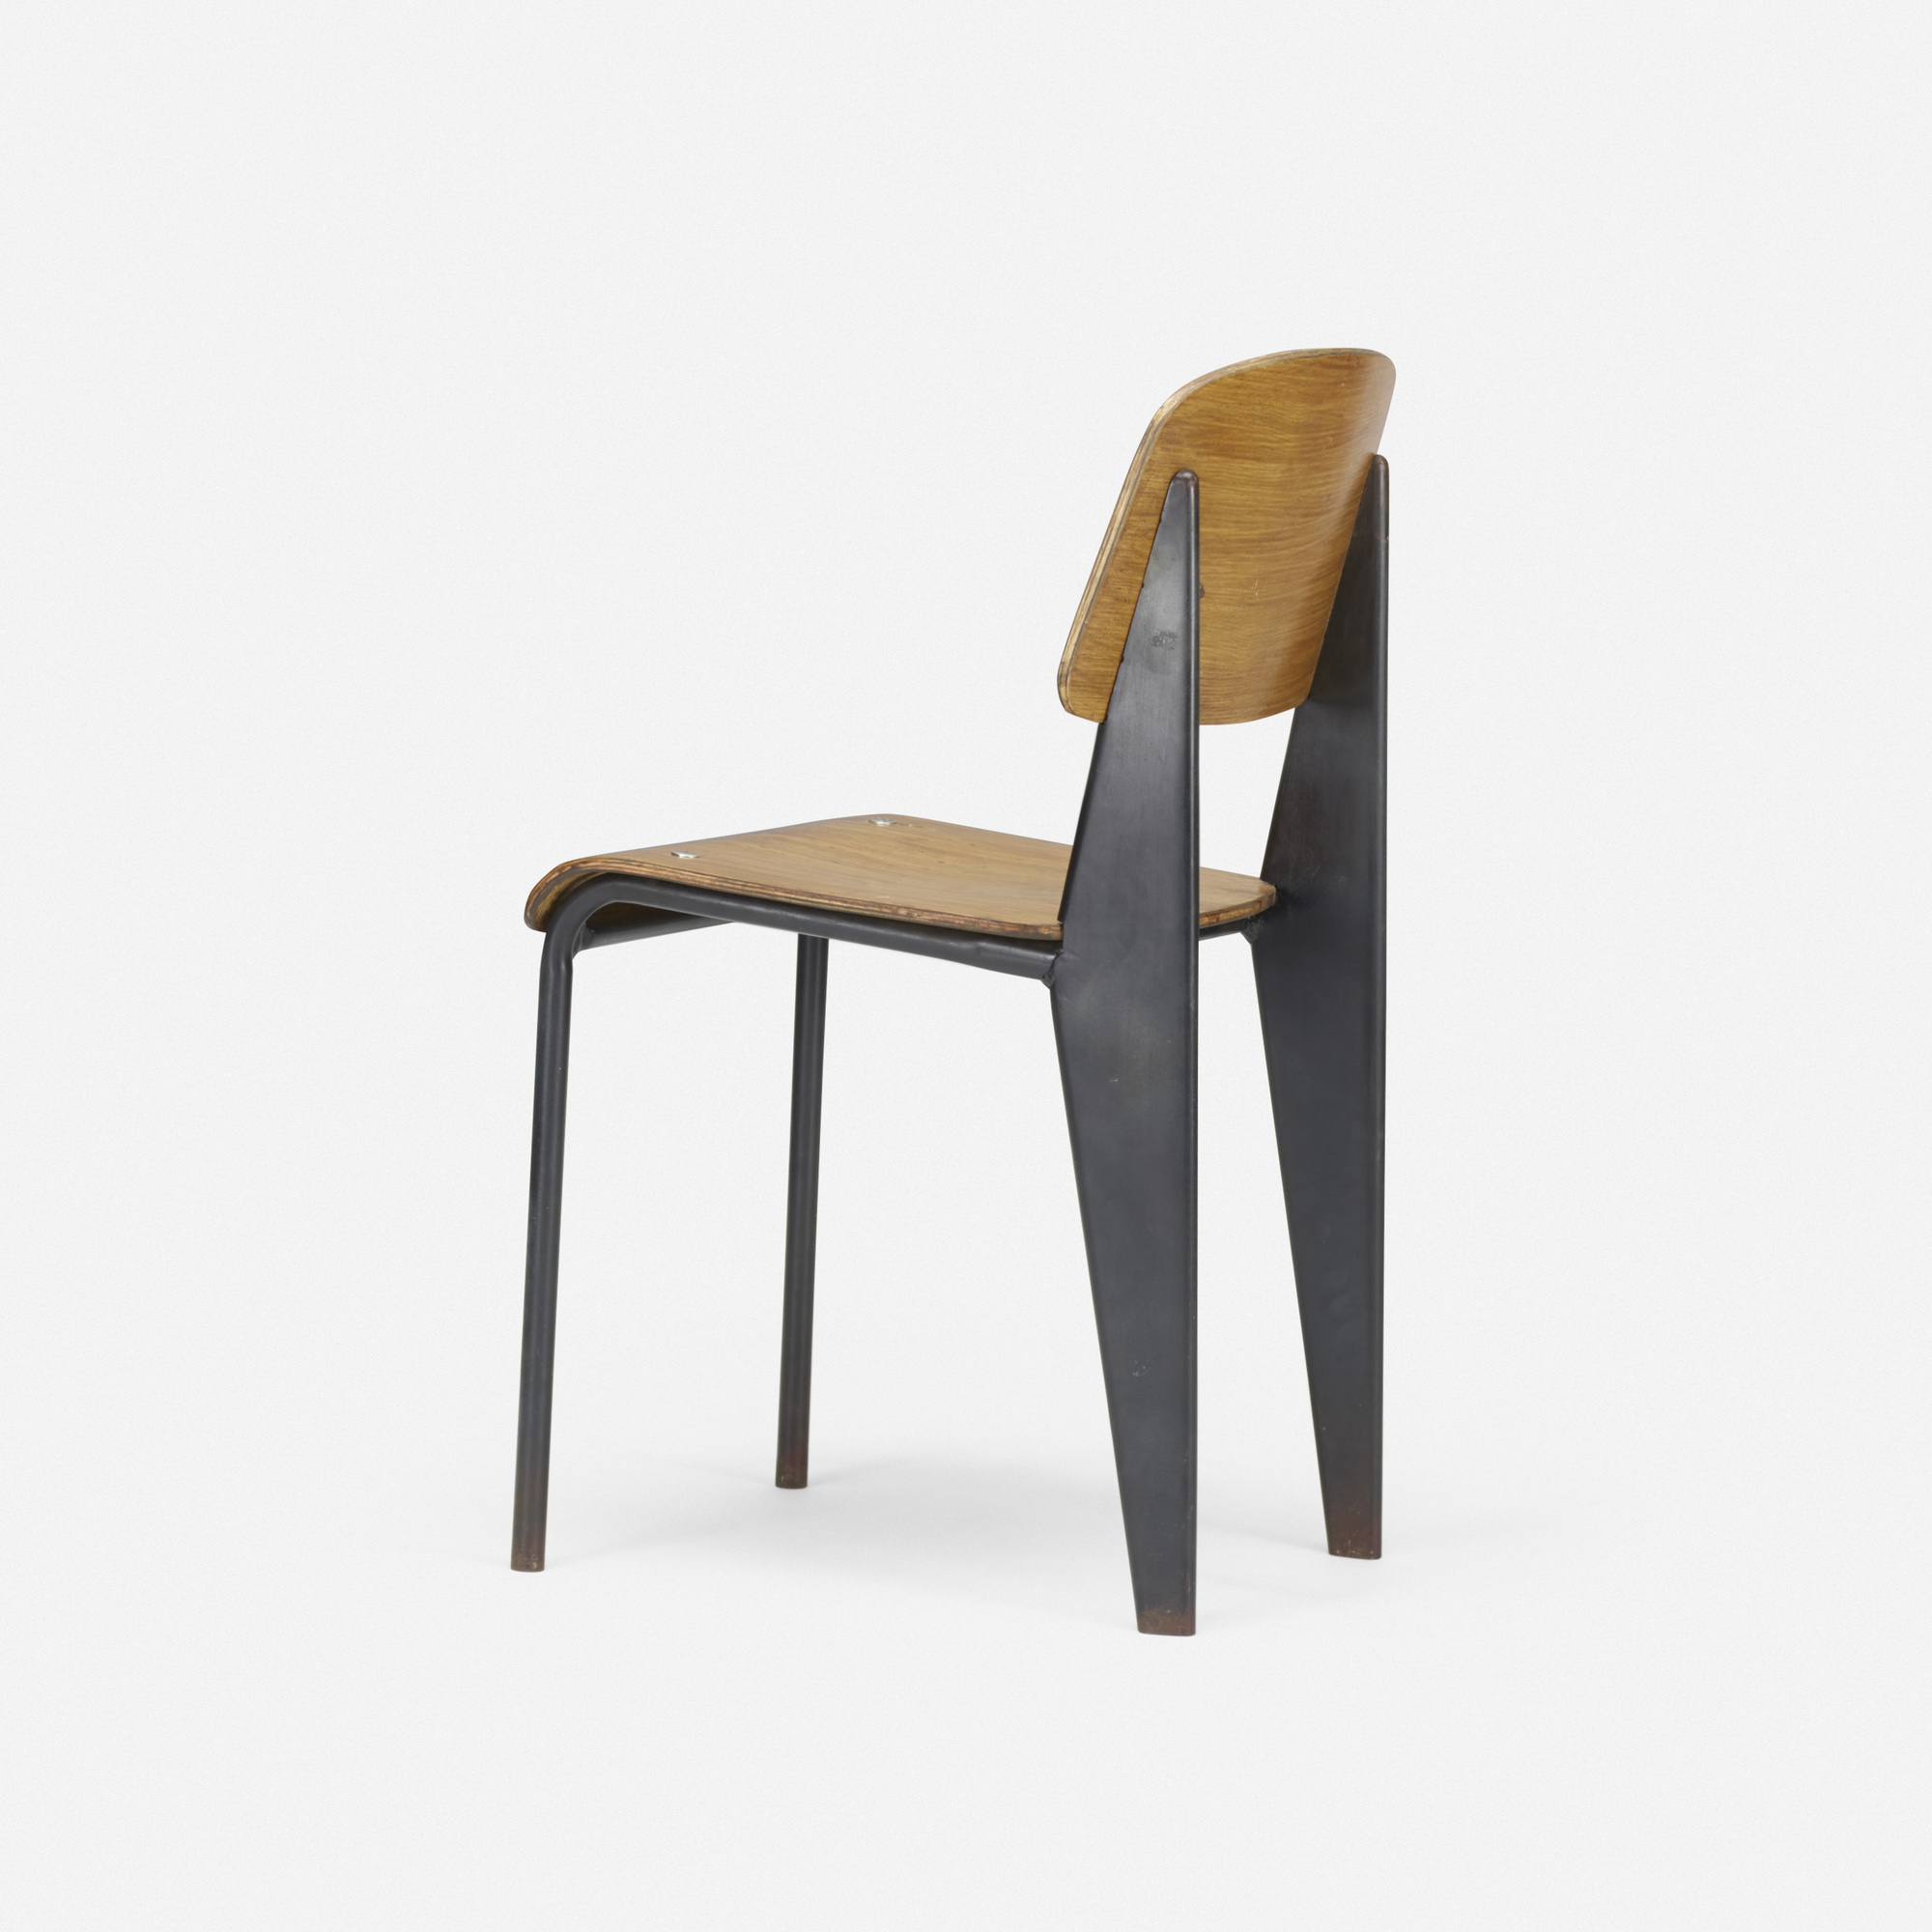 Incroyable 100: Jean Prouvé / U0027Semi Metalu0027 Chair, Model No. 305